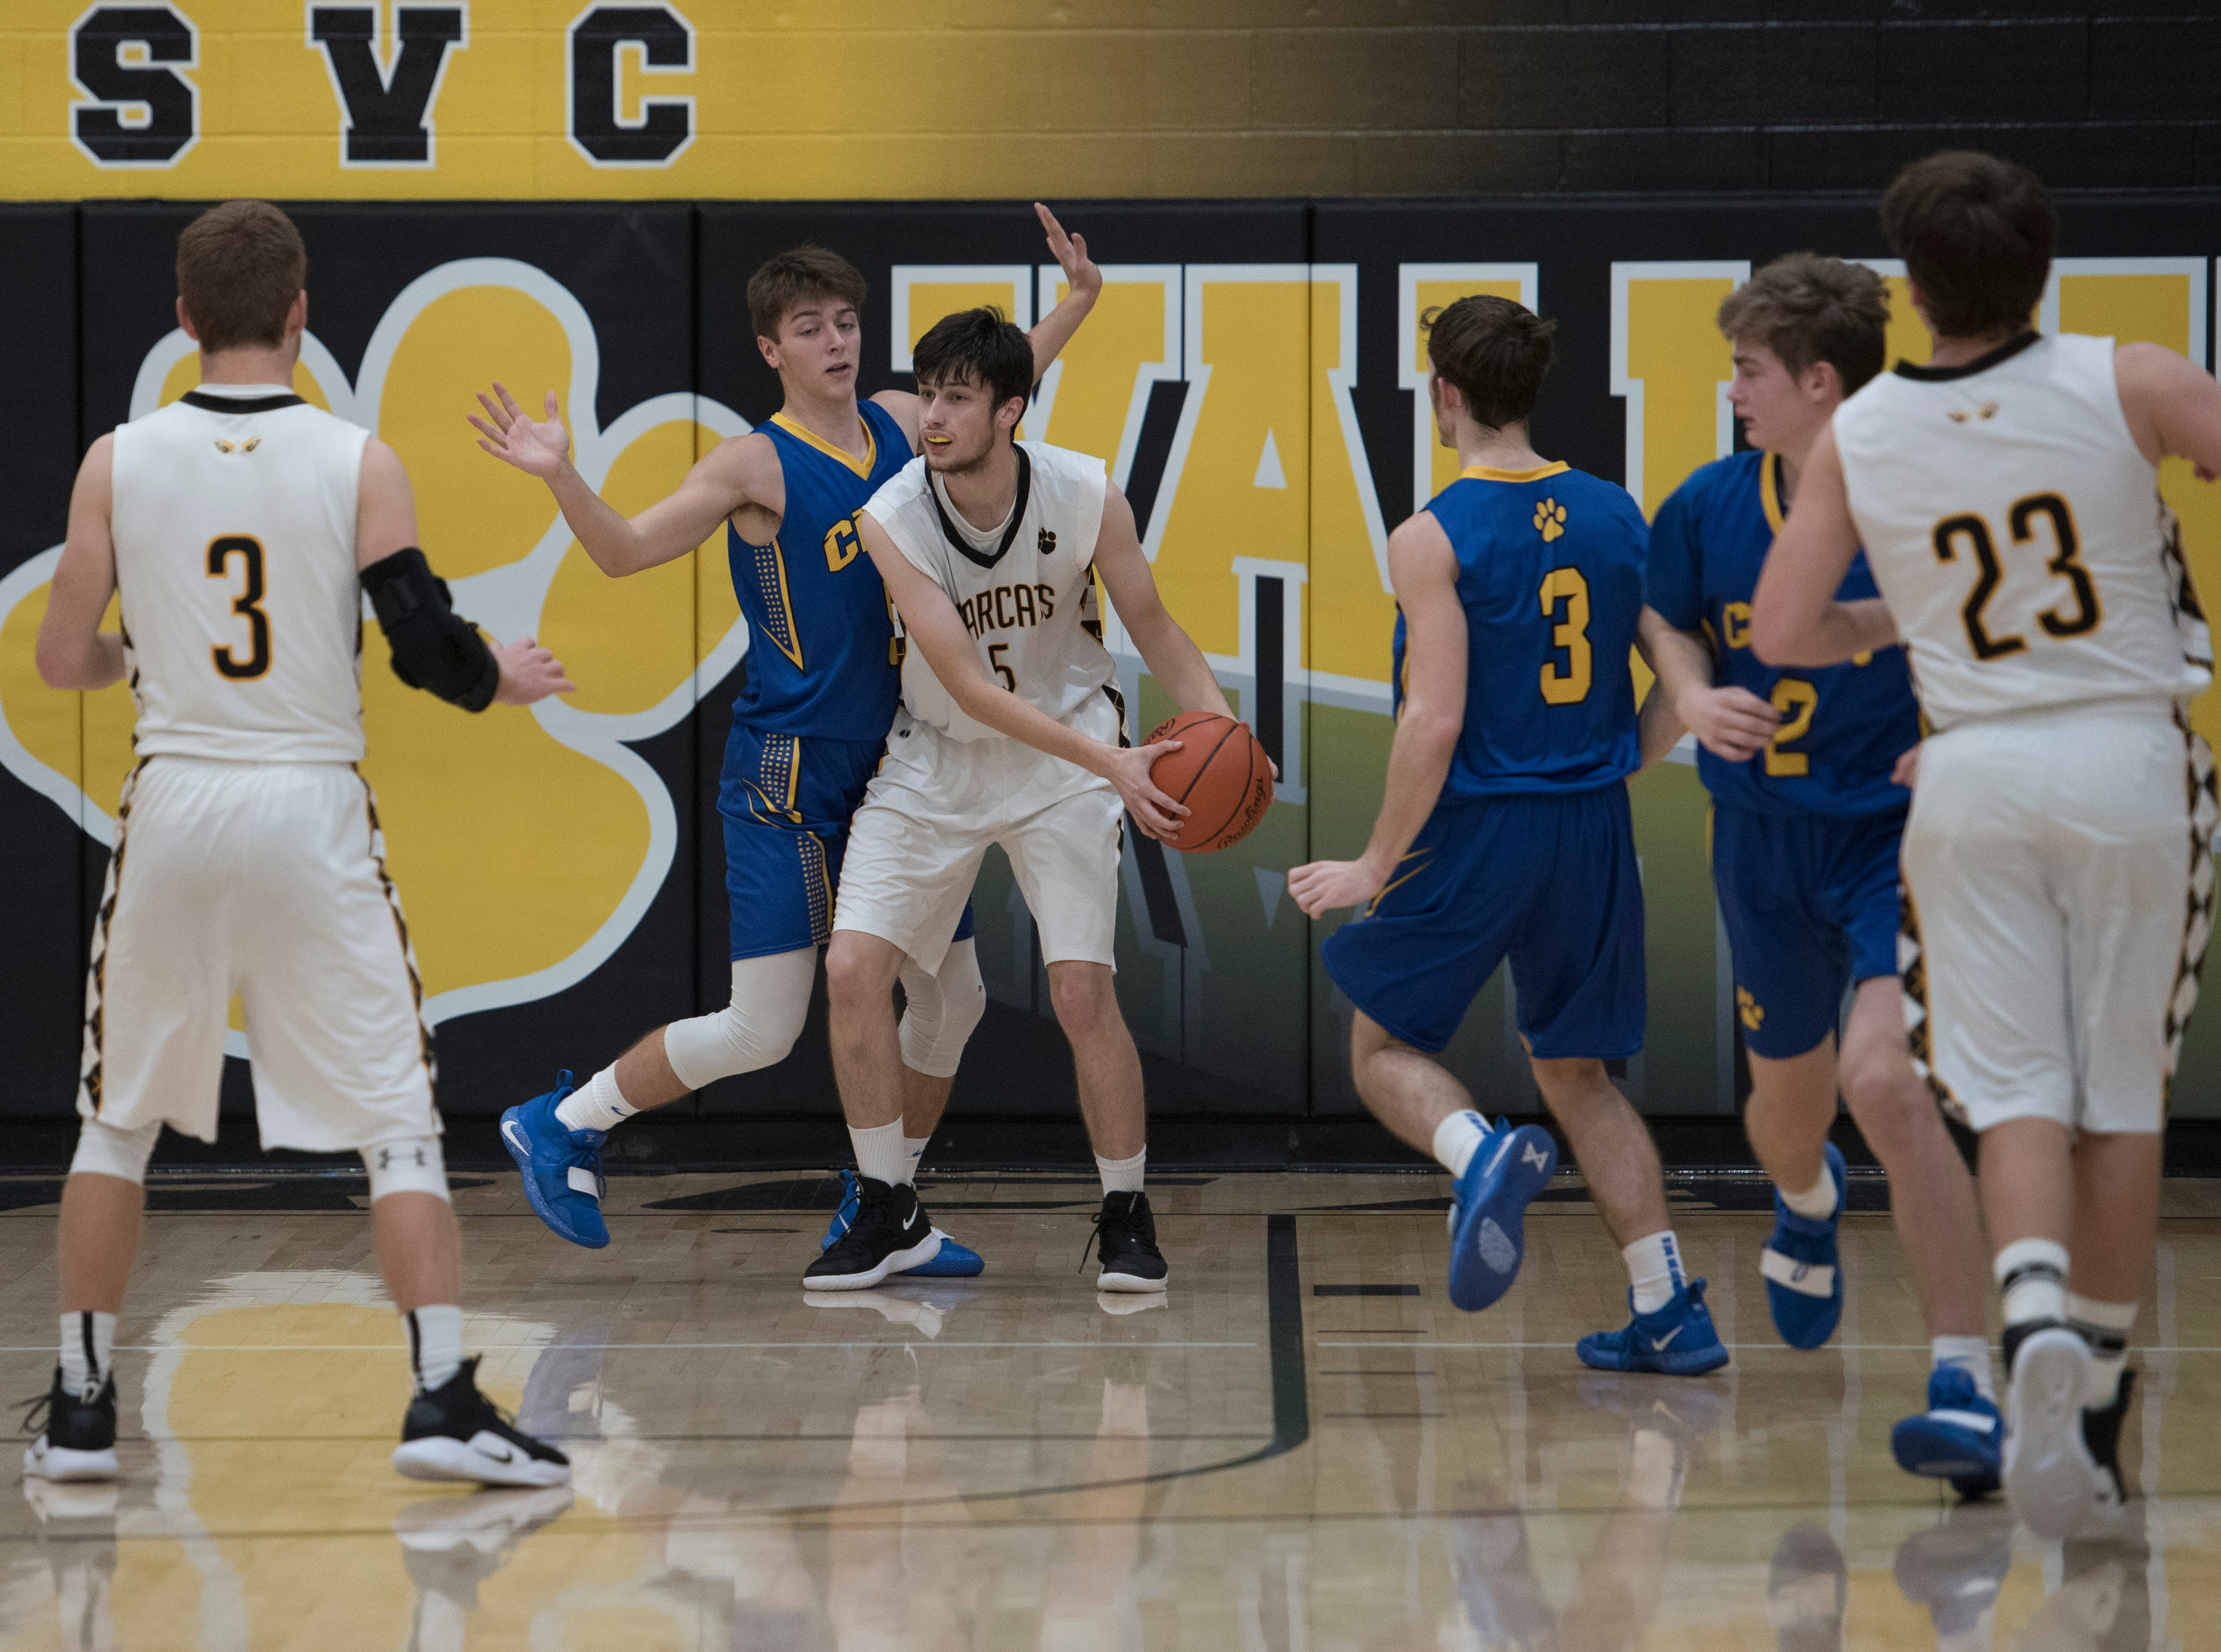 Paint Valley defeated Portsmouth Clay Friday night 63-55 at Paint Valley High School in Bainbridge, Ohio.